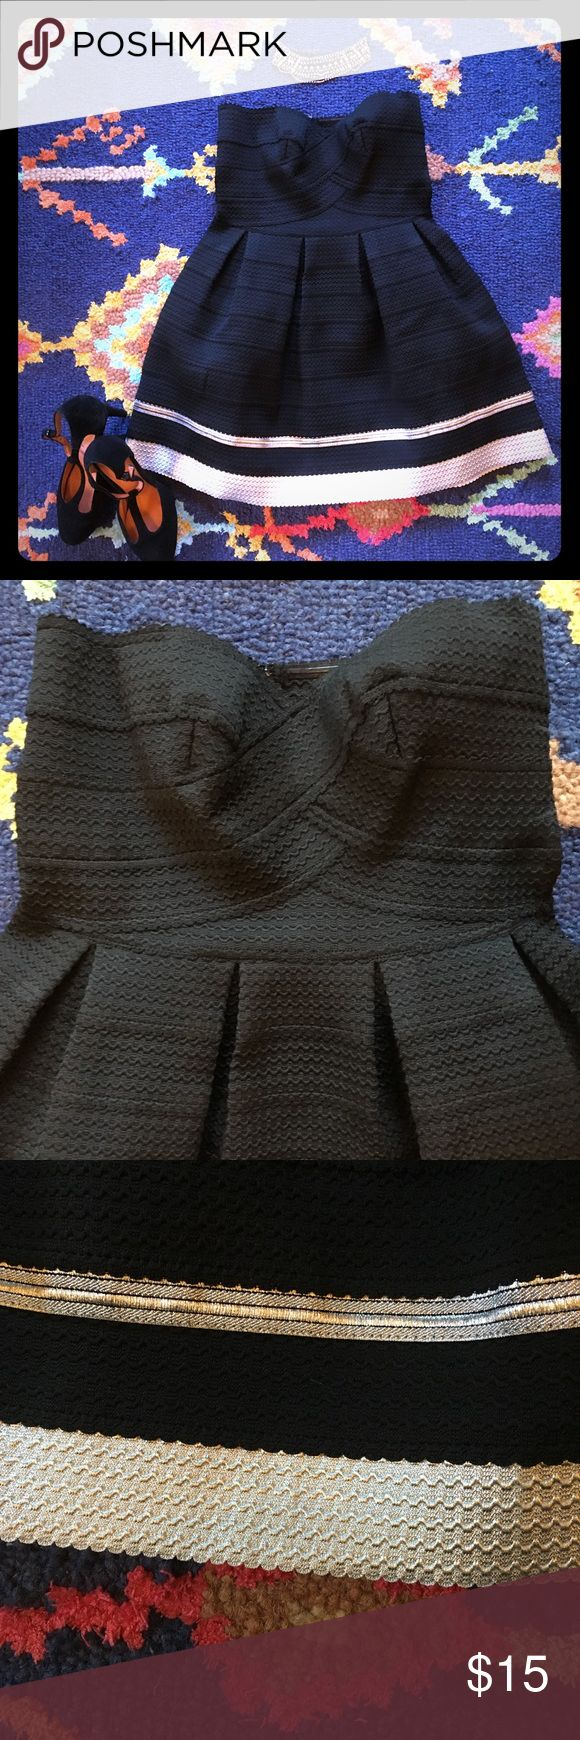 """Sans Souci bandage dress nwt Adorable (think Jess from New Girl style) and flattering, strapless elastic bandage dress.  Fit and flare shape.  24"""" from top to hem. Sans Souci Dresses Mini"""